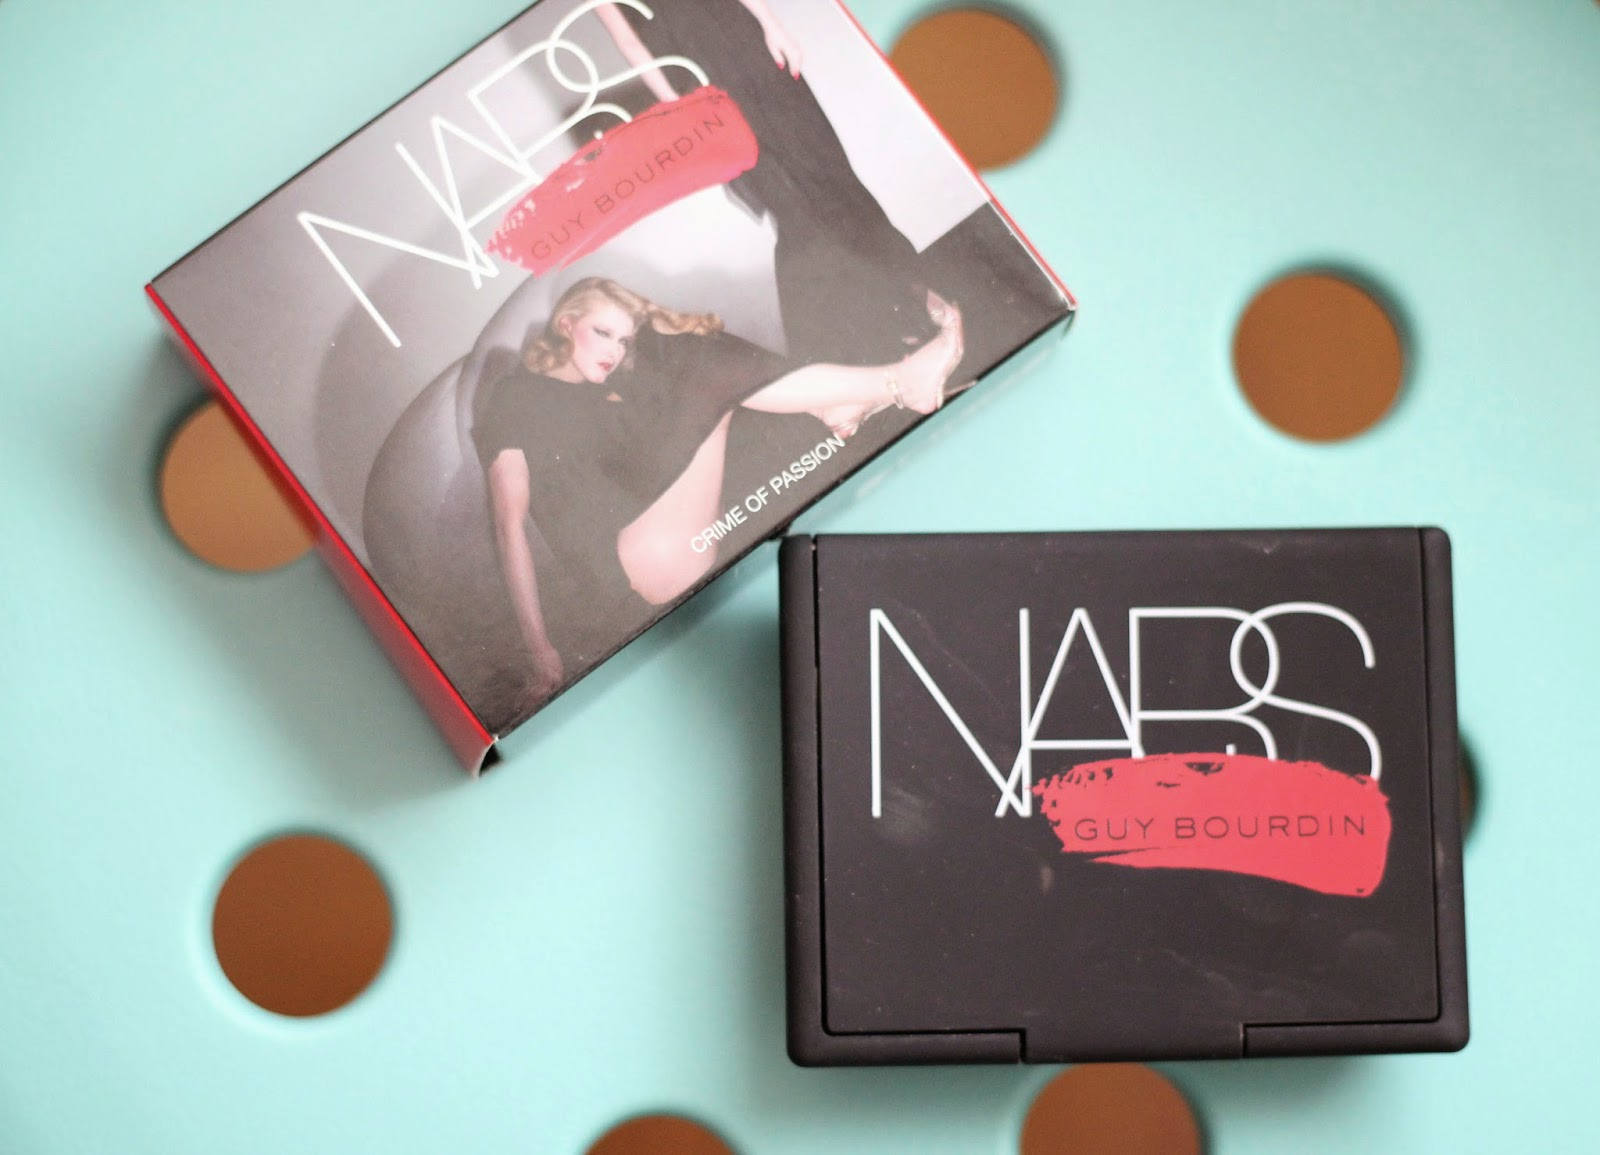 photo_nars-guybourdin-crimeofpassion